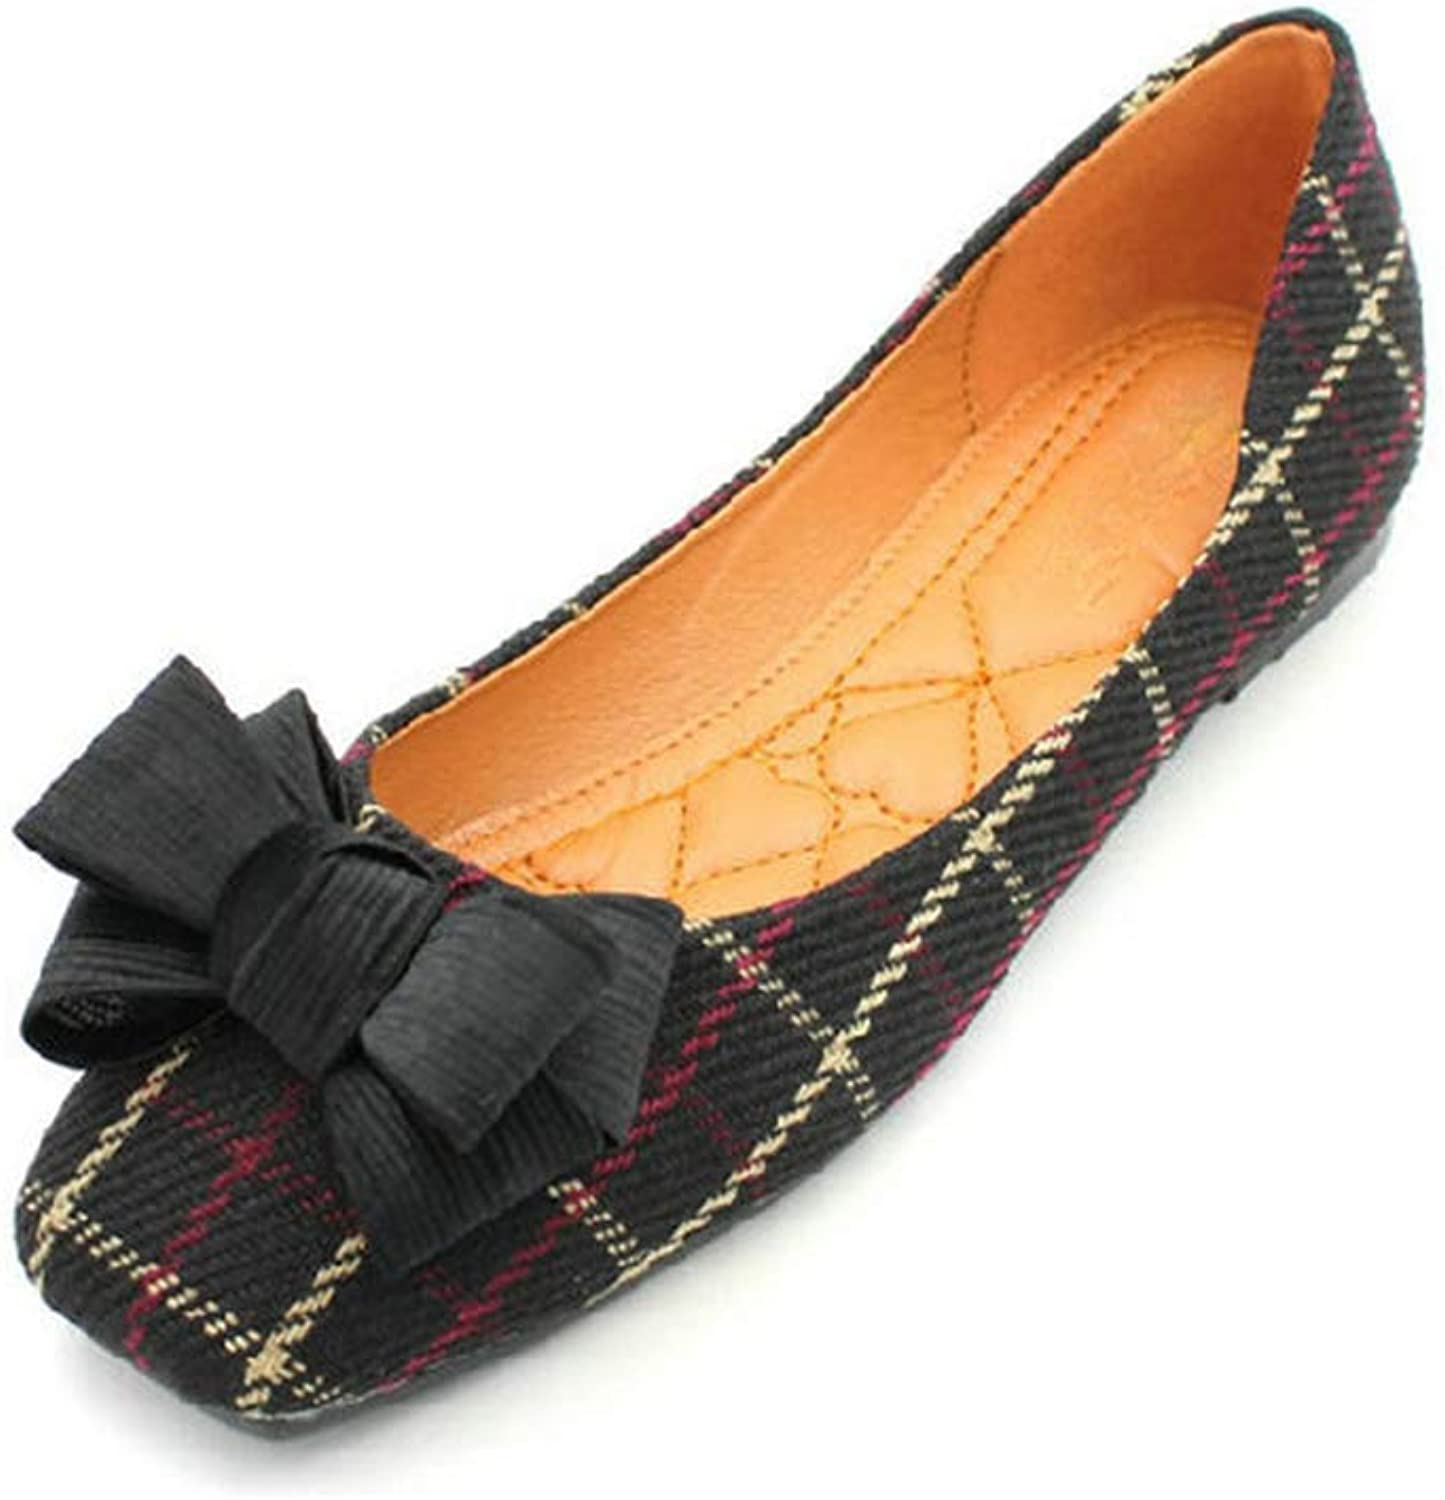 August Jim Flats shoes for Women Check Gingham Bowknot Square Toe Ballet Flat shoes